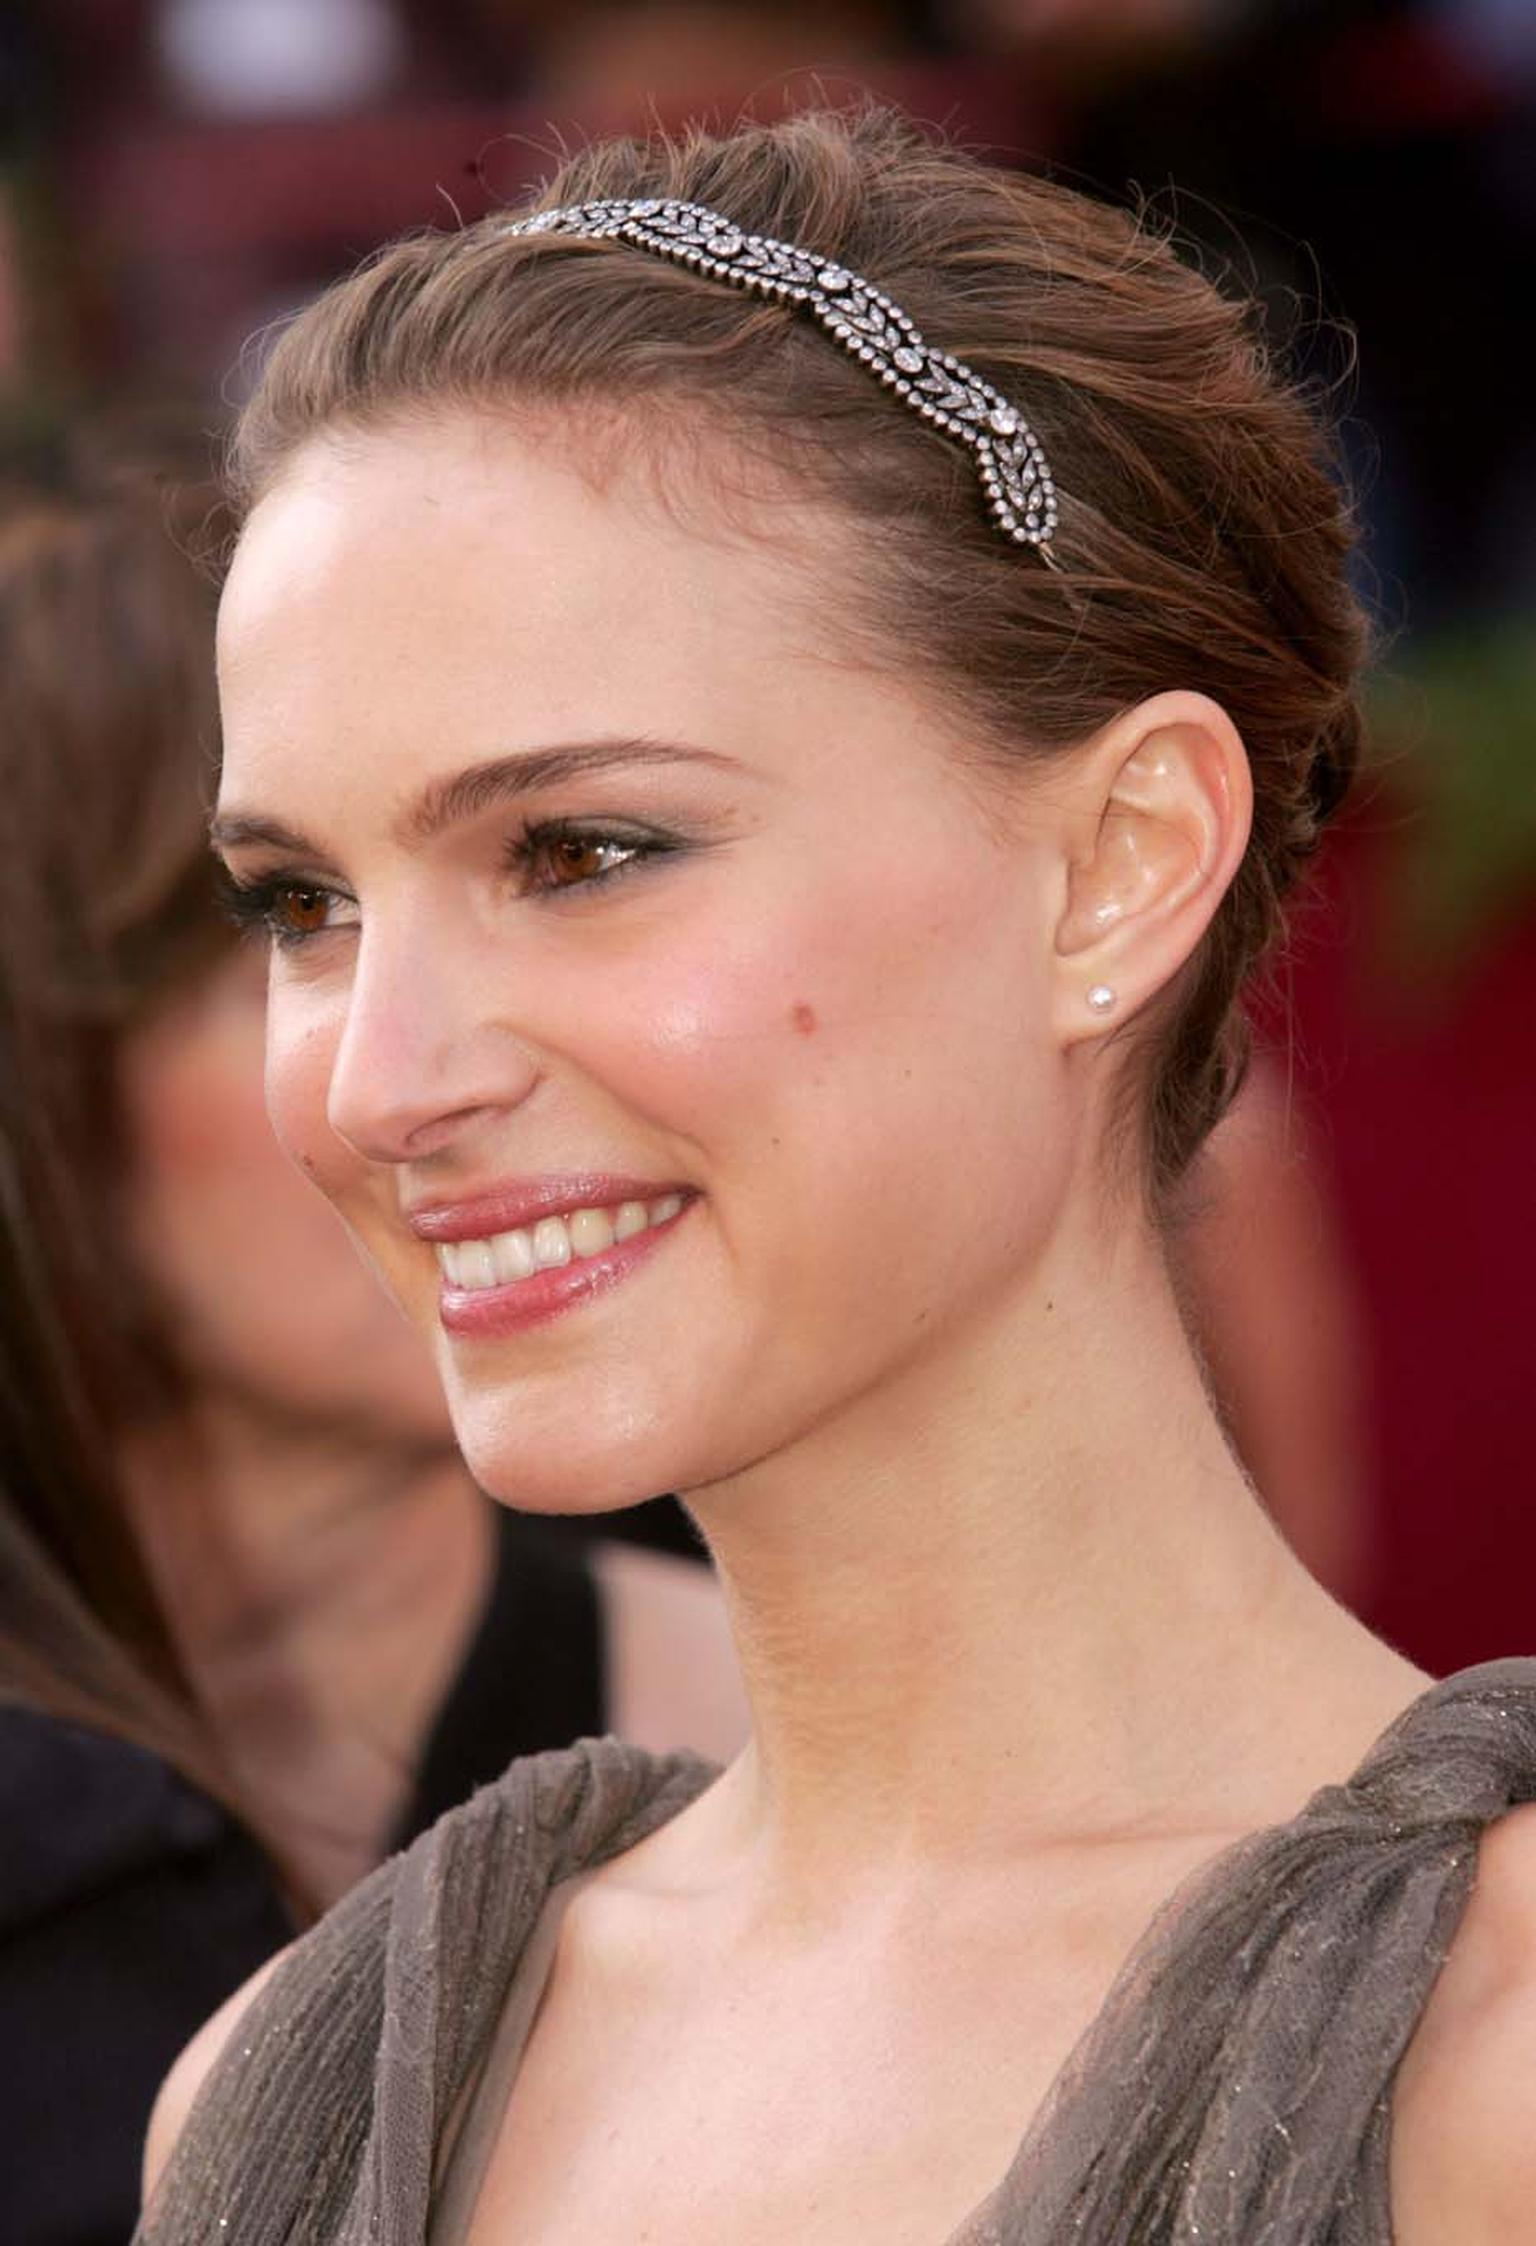 Fred Leighton's Rebecca Selva was inspired by Victorian ingenuity when she had a stunning 19th century choker mounted to create a beautiful diamond headband for actress Natalie Portman to wear as she walked the 2005 Academy Awards red carpet.